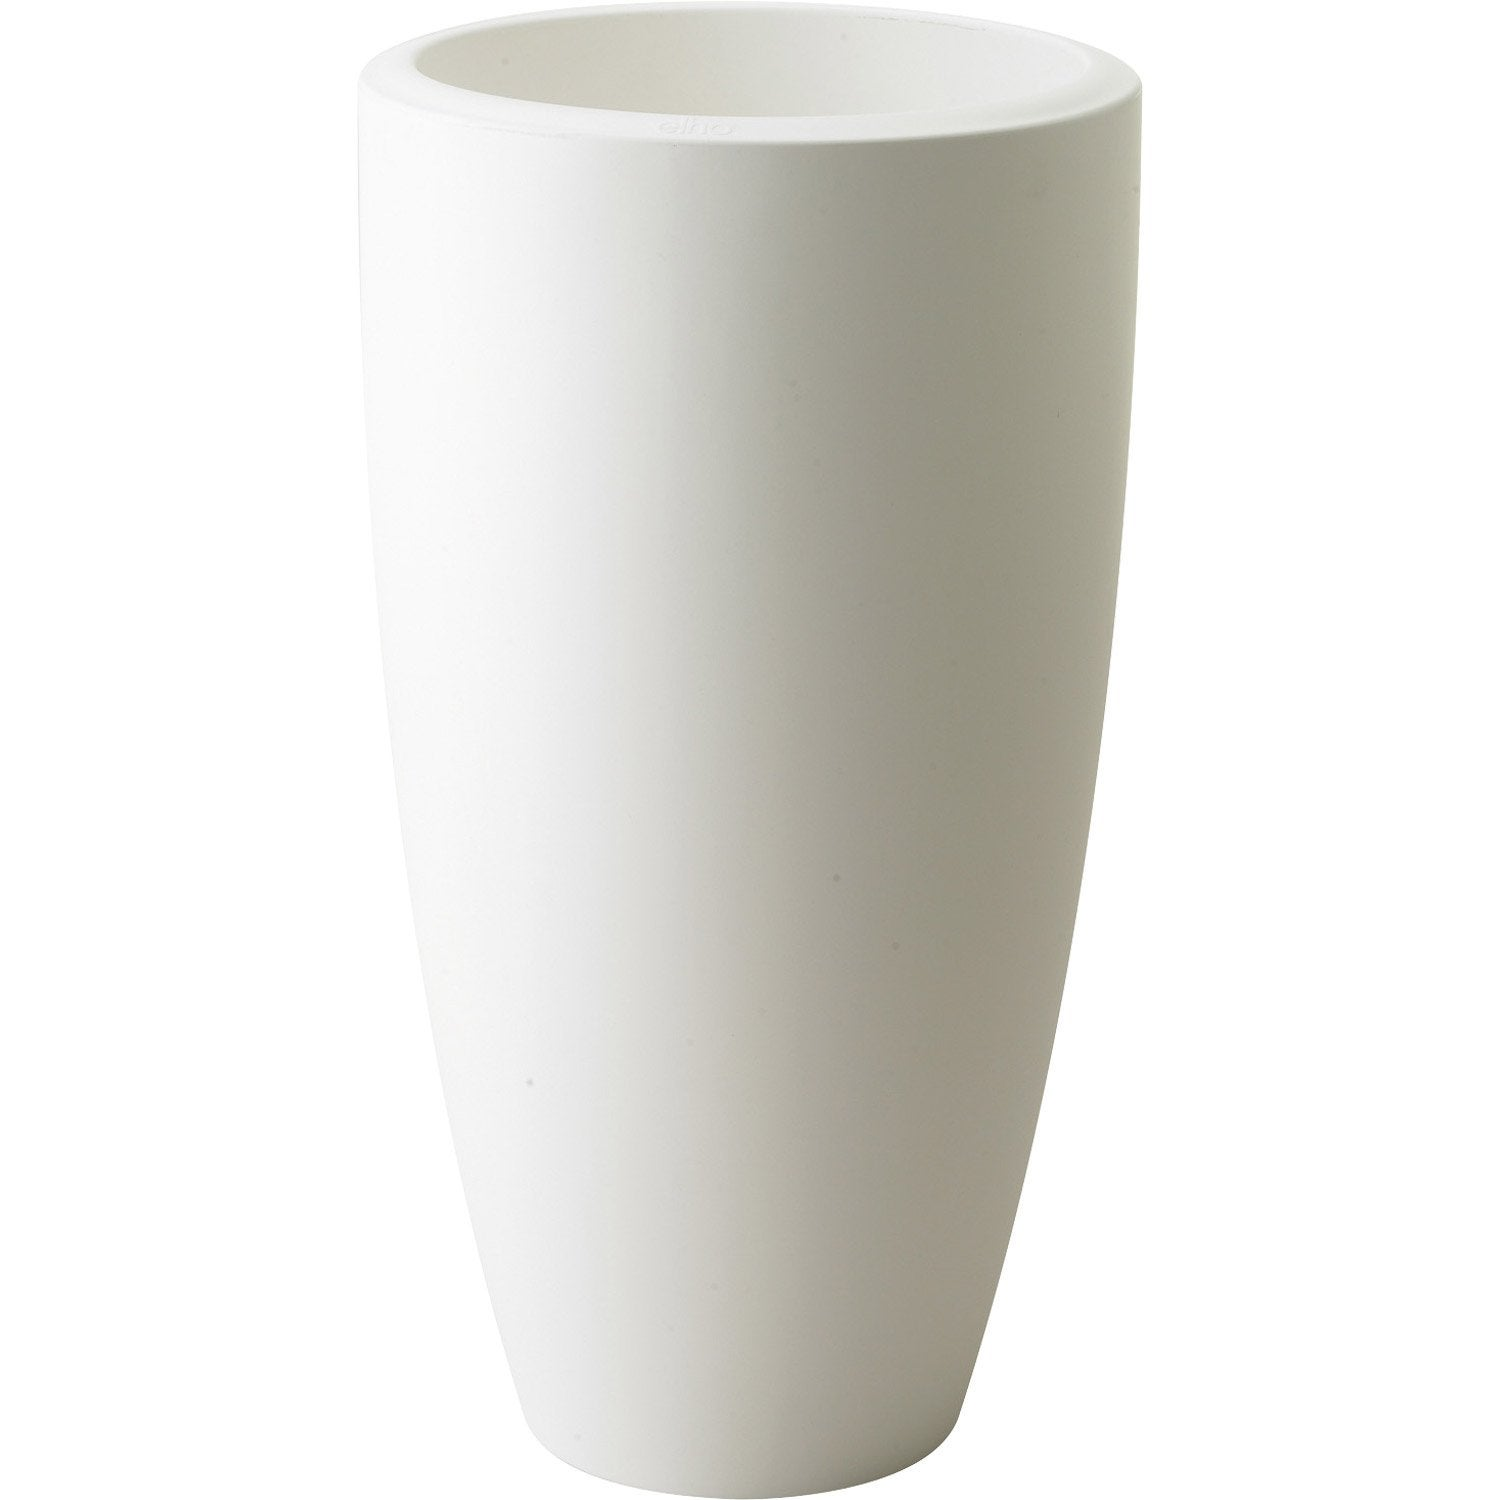 Pot plastique elho x x cm blanc leroy merlin for Pots lumineux leroy merlin